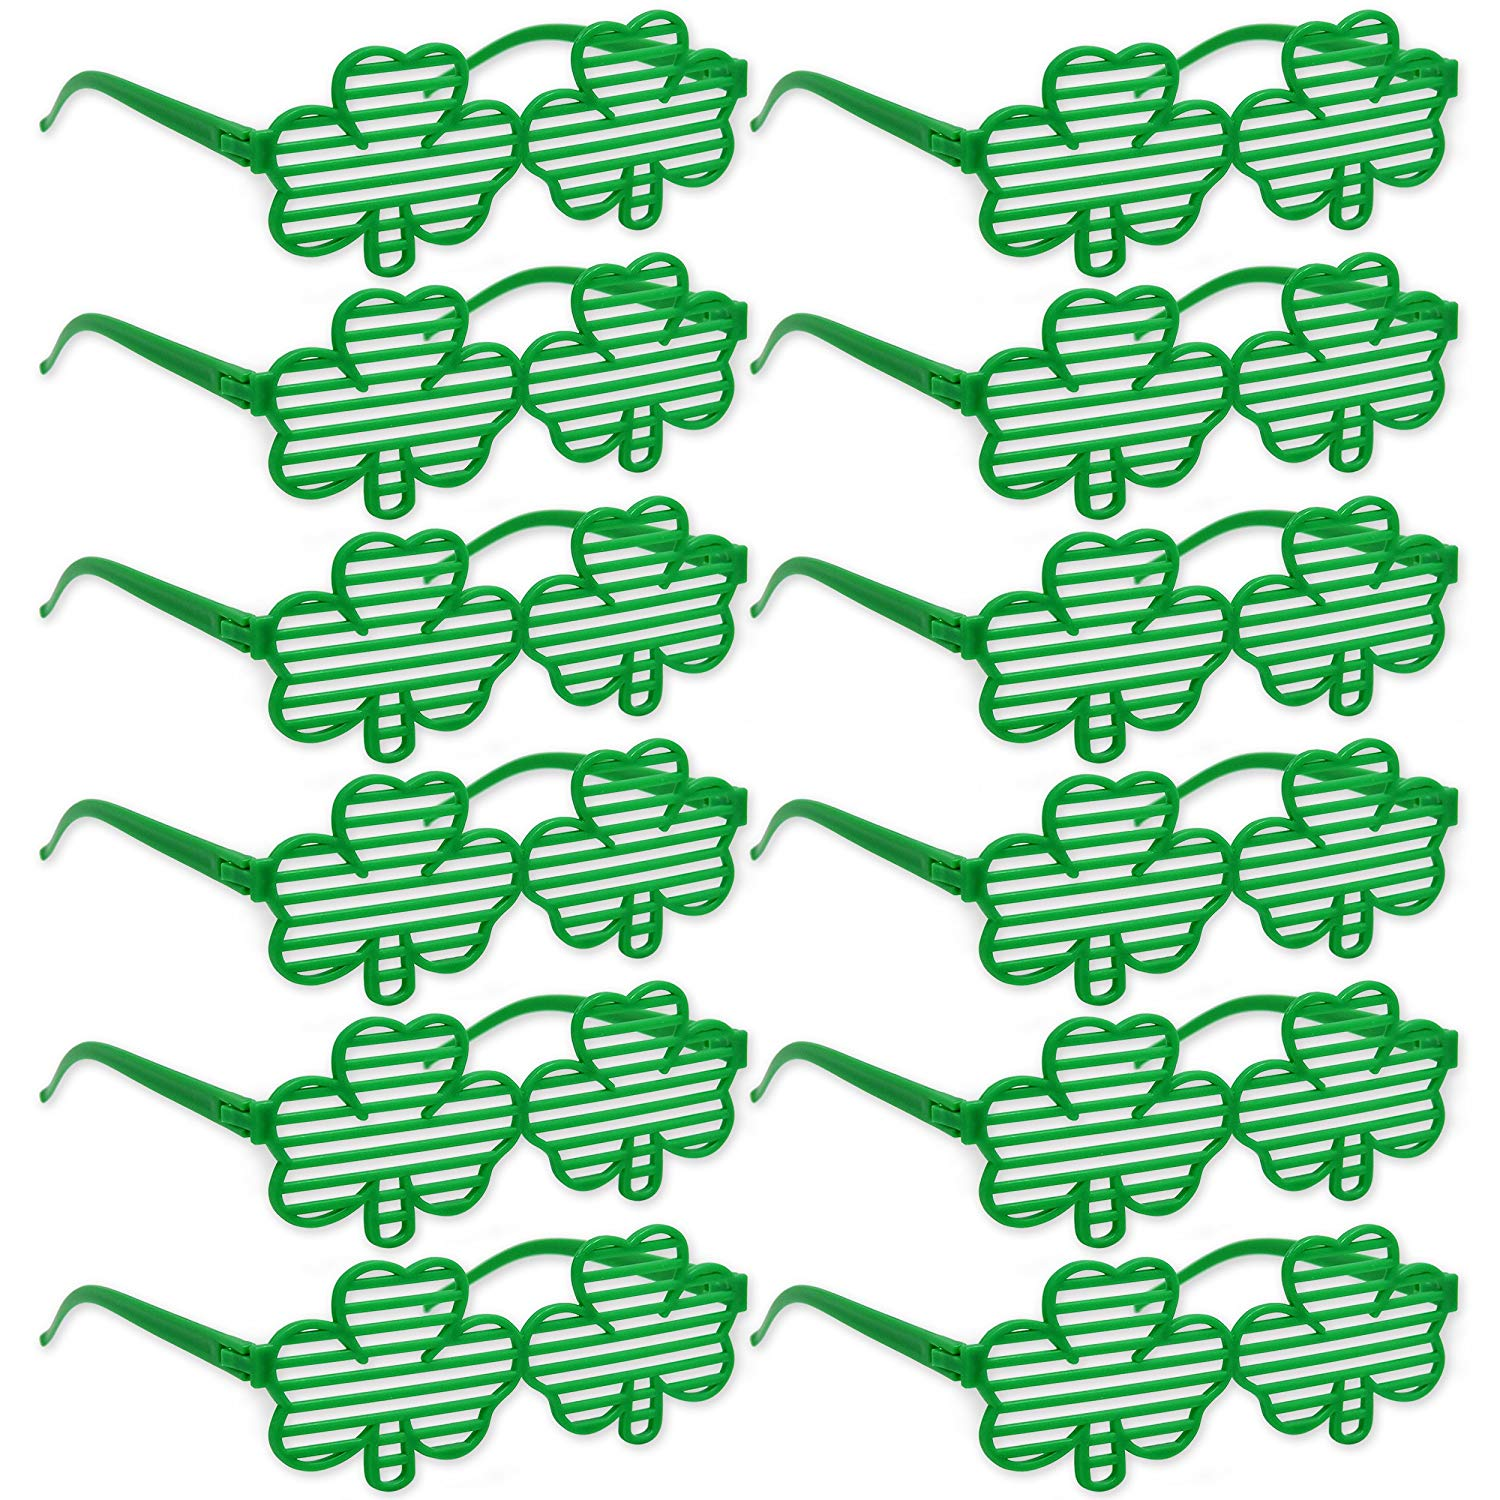 24 Piece St. Patricks Day Green Shamrock Clover Sunglasses - Shutter Shades